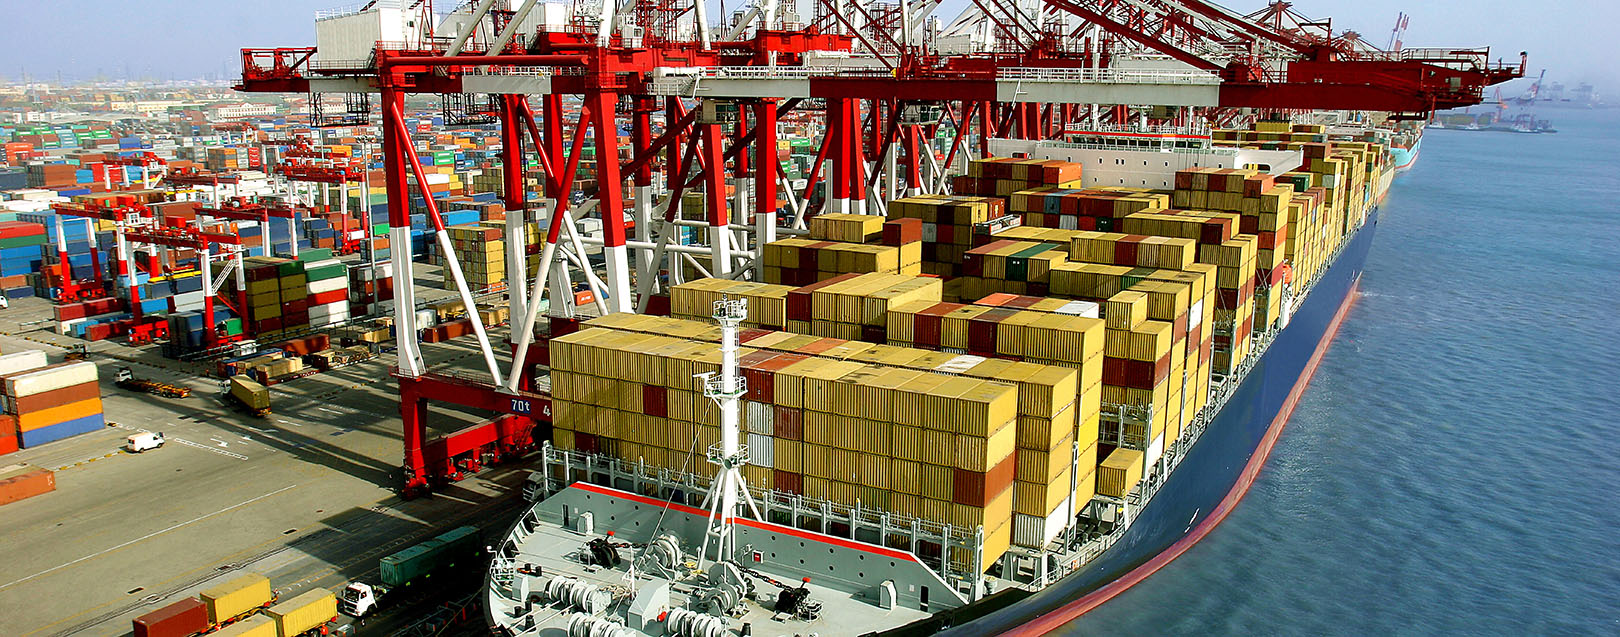 Major ports witness 5.1% growth during Apr-Sept 2016-17